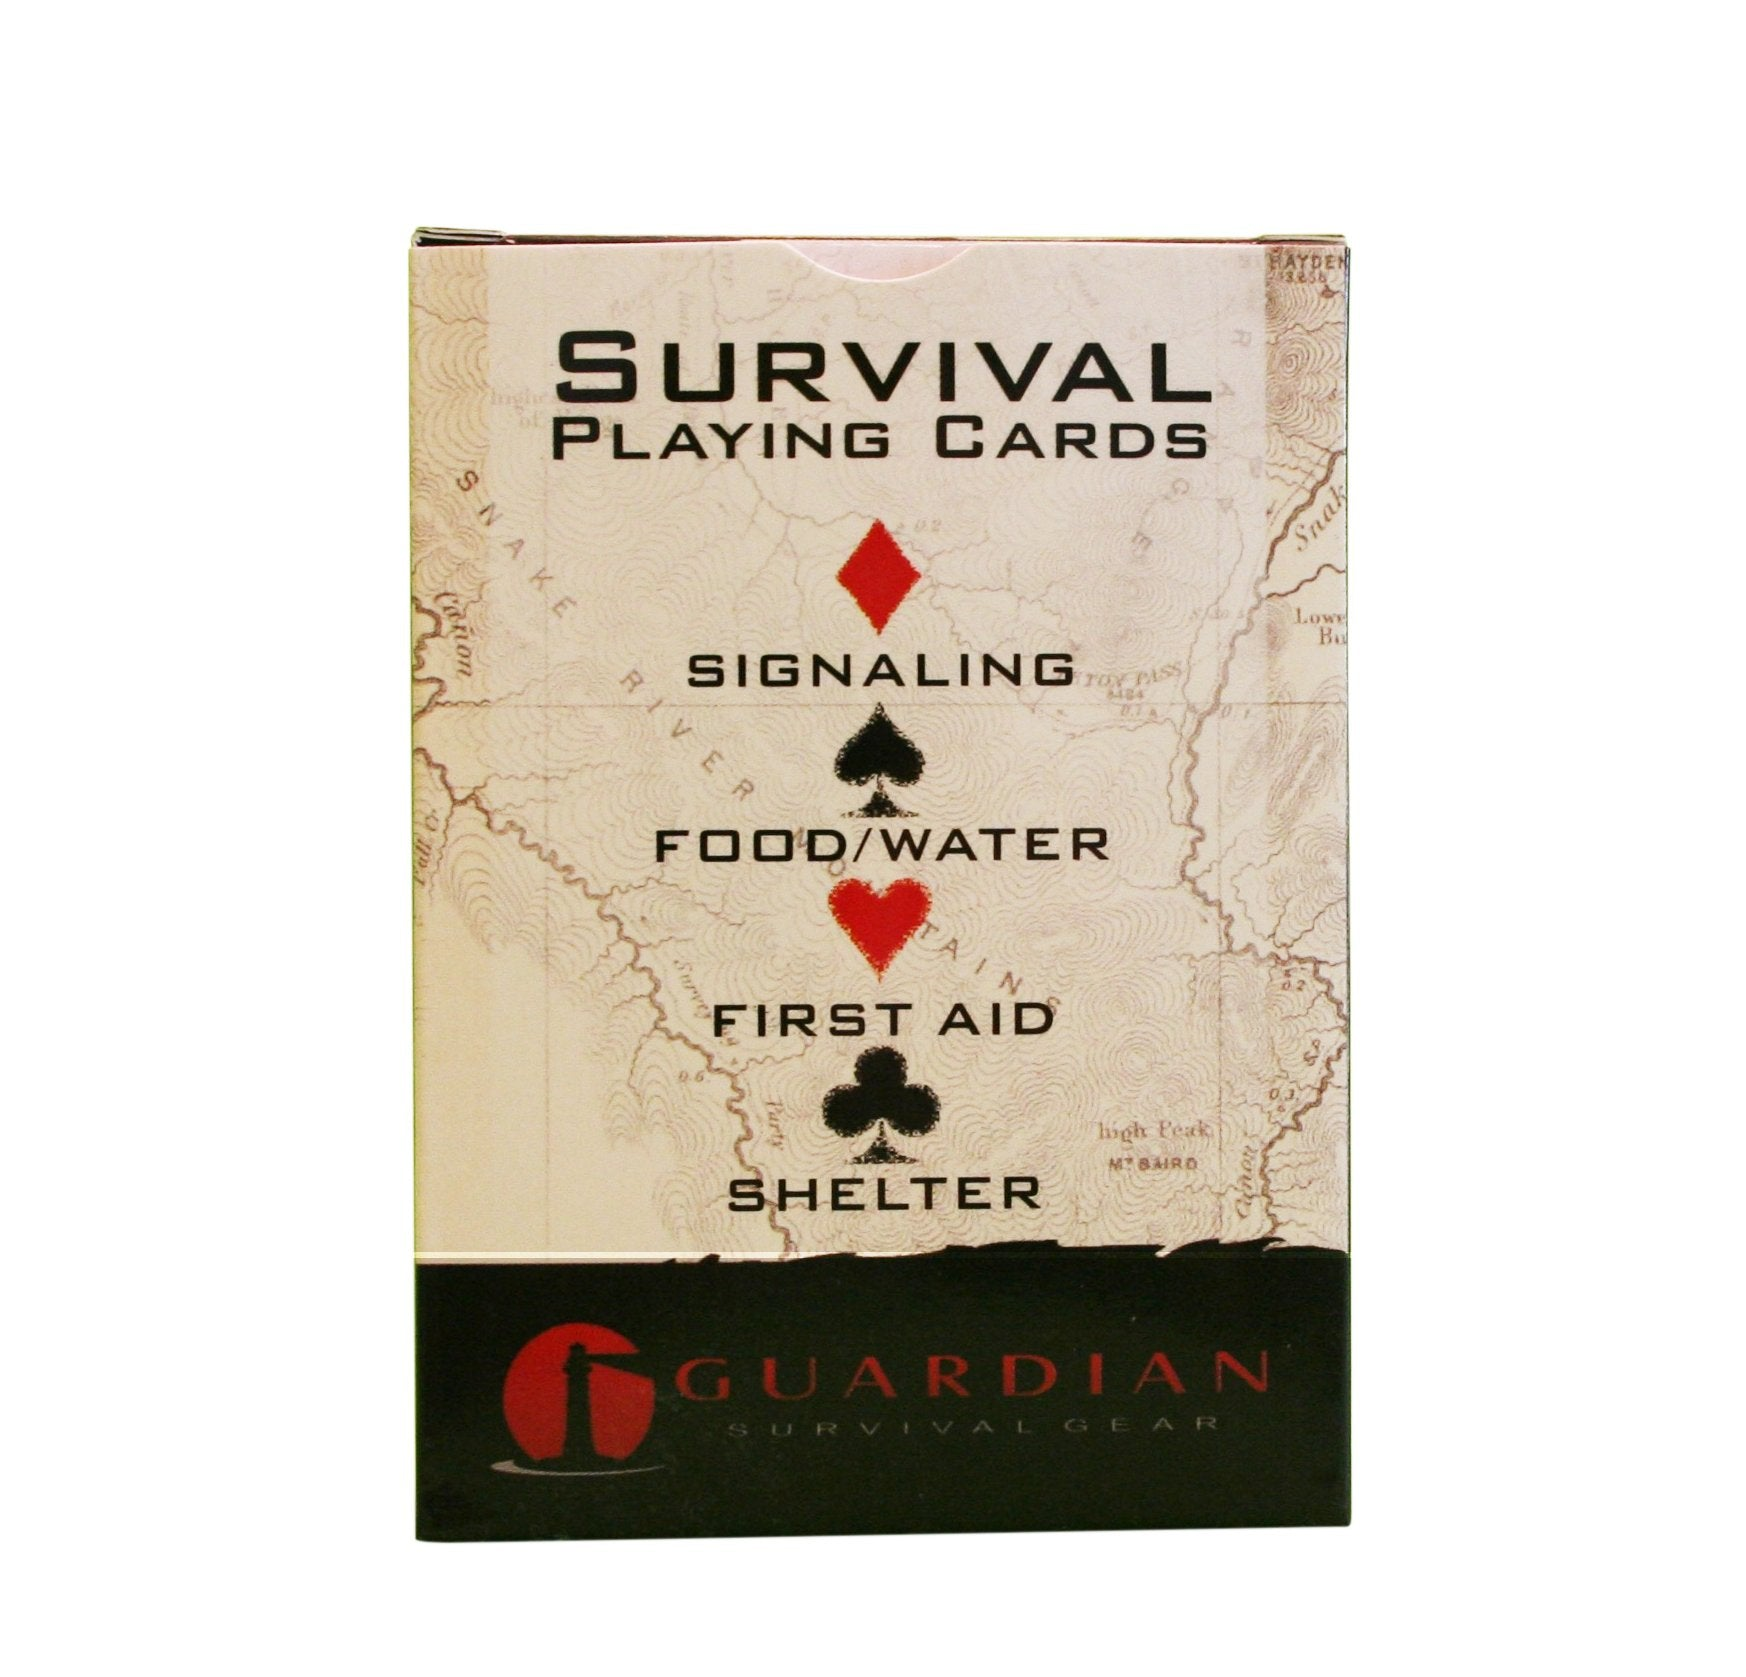 Deck of Survival Playing Cards